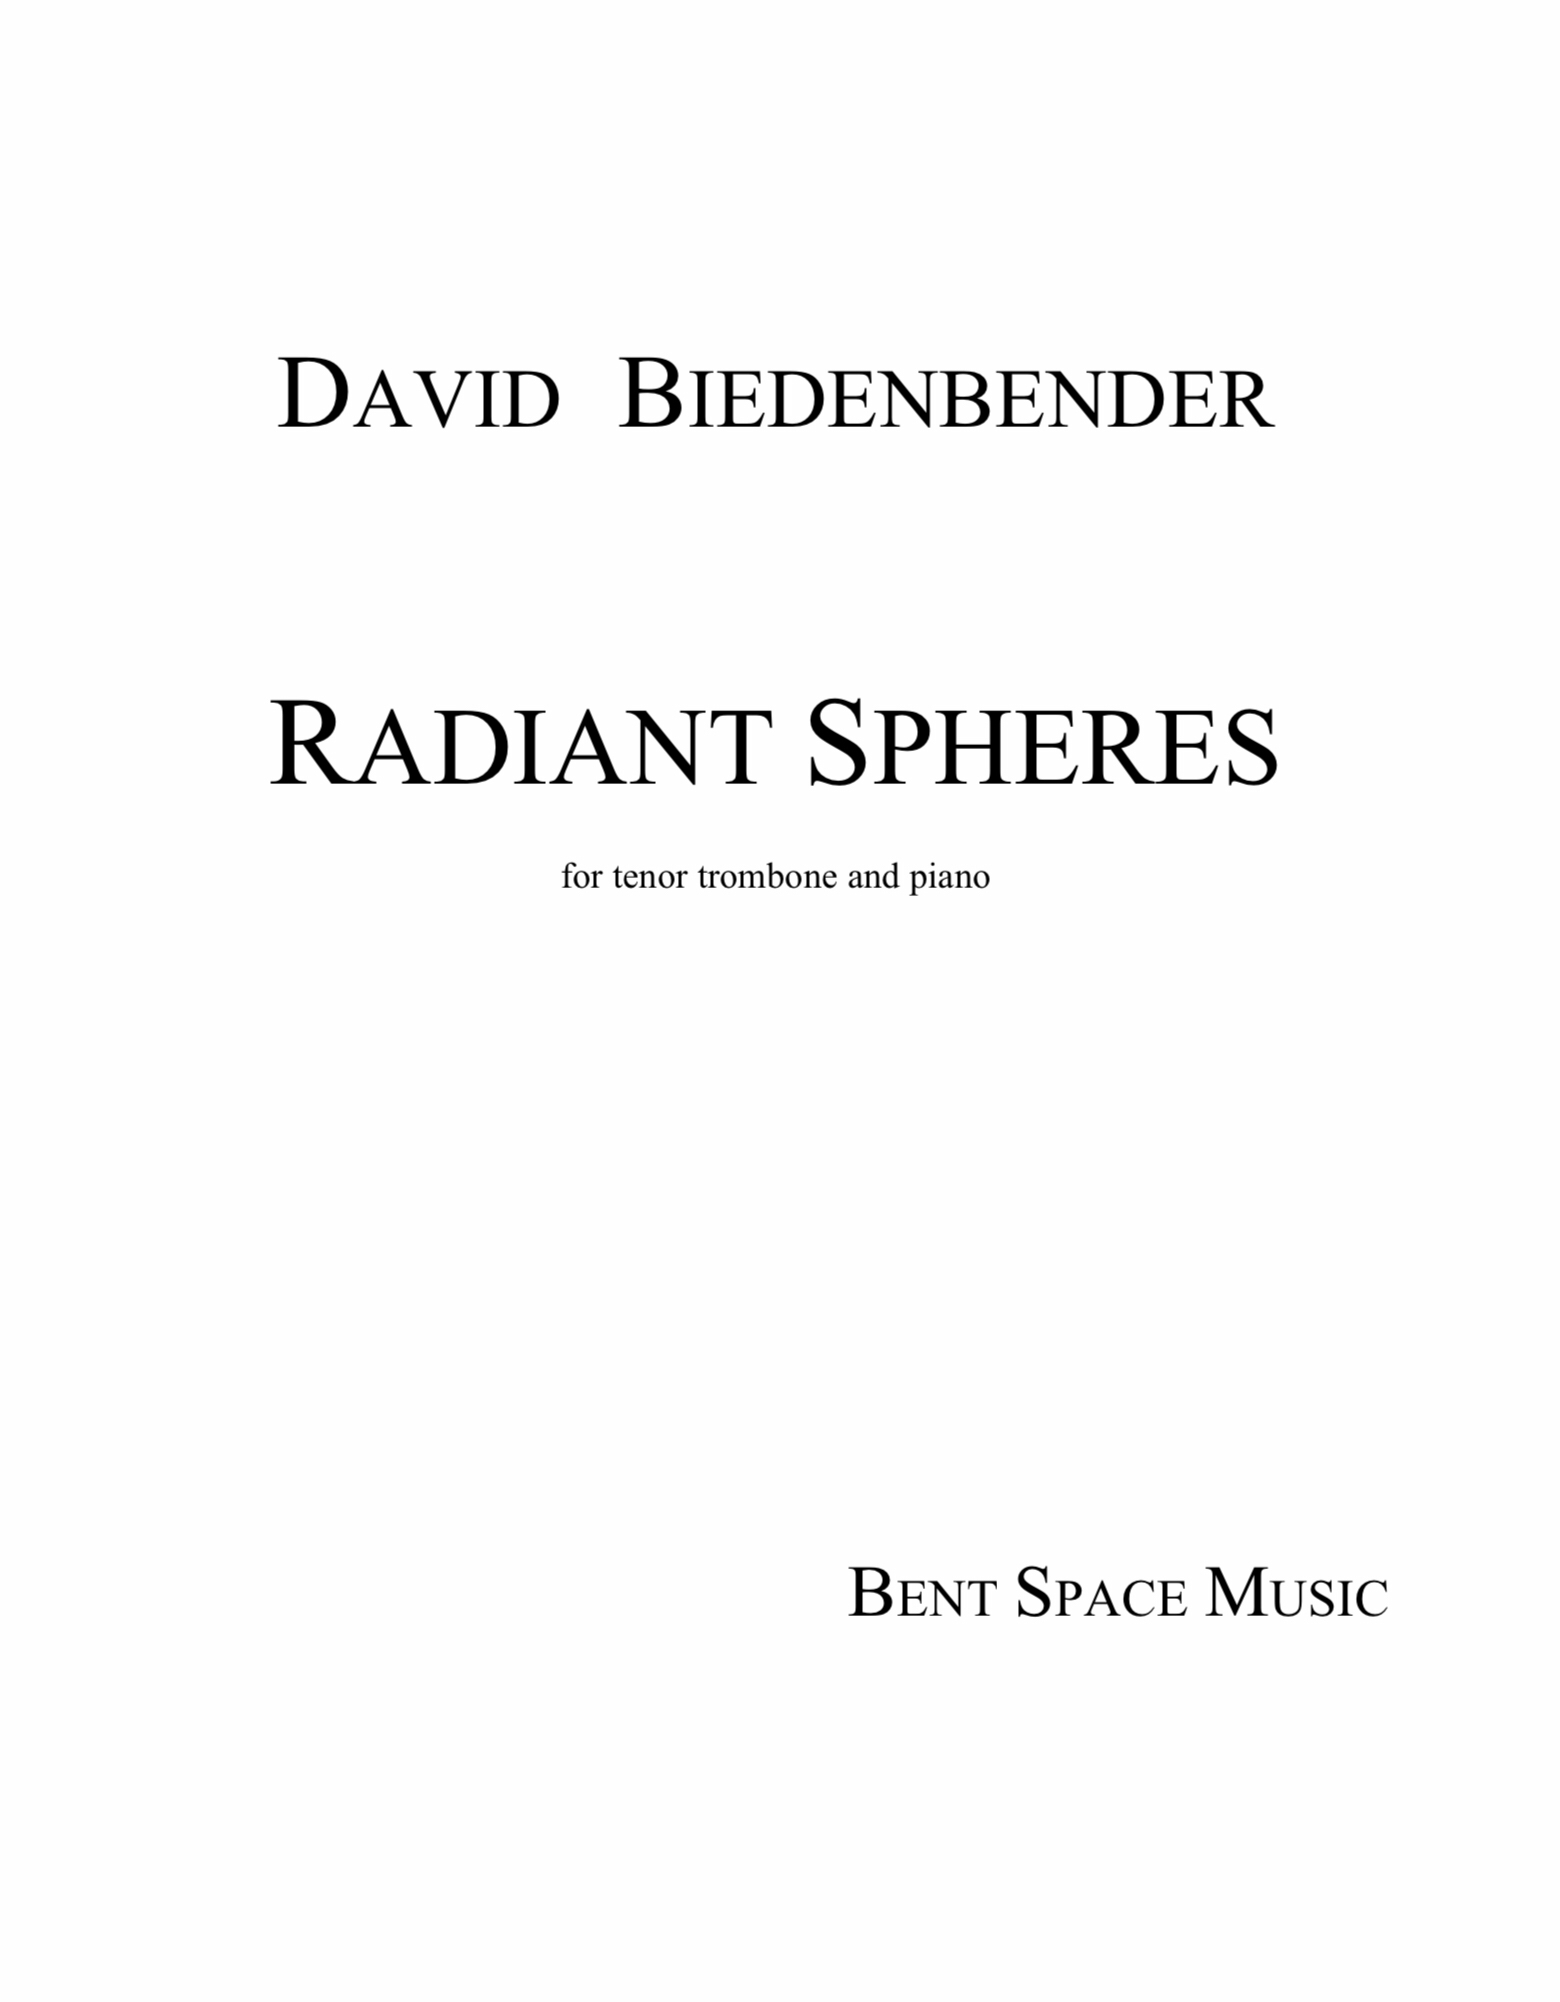 Radiant Spheres by David Biedenbender